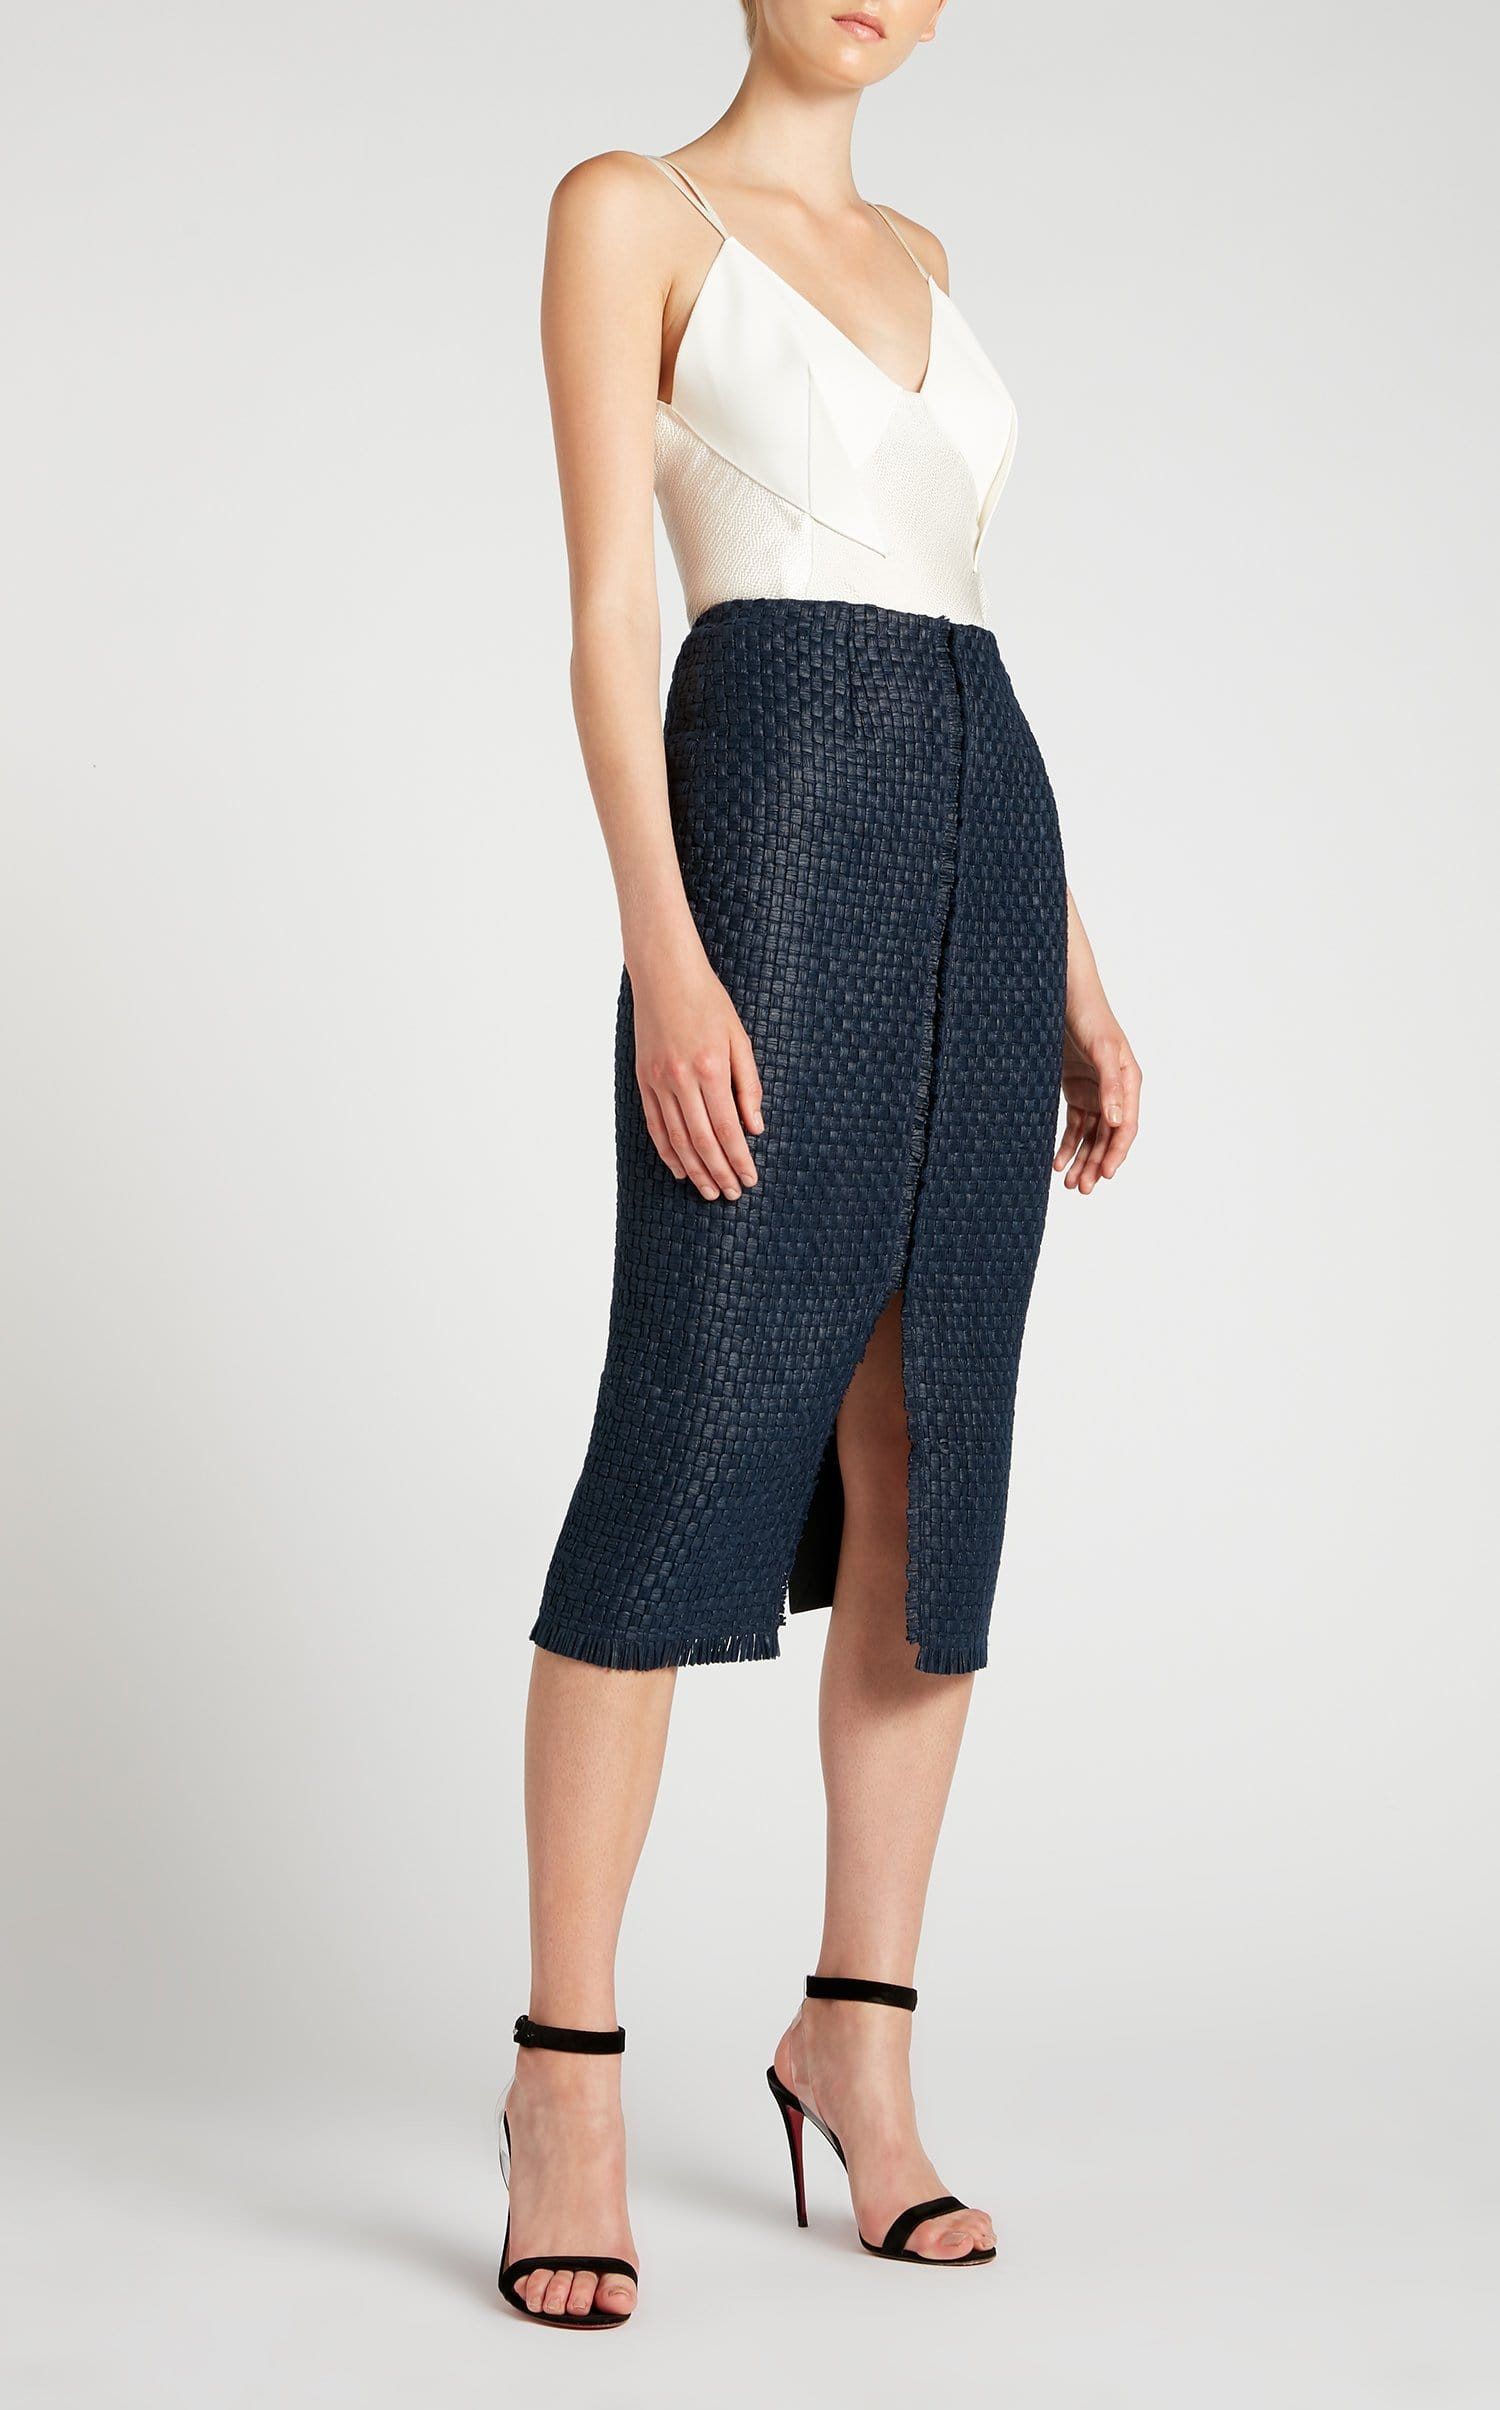 Turnley Skirt